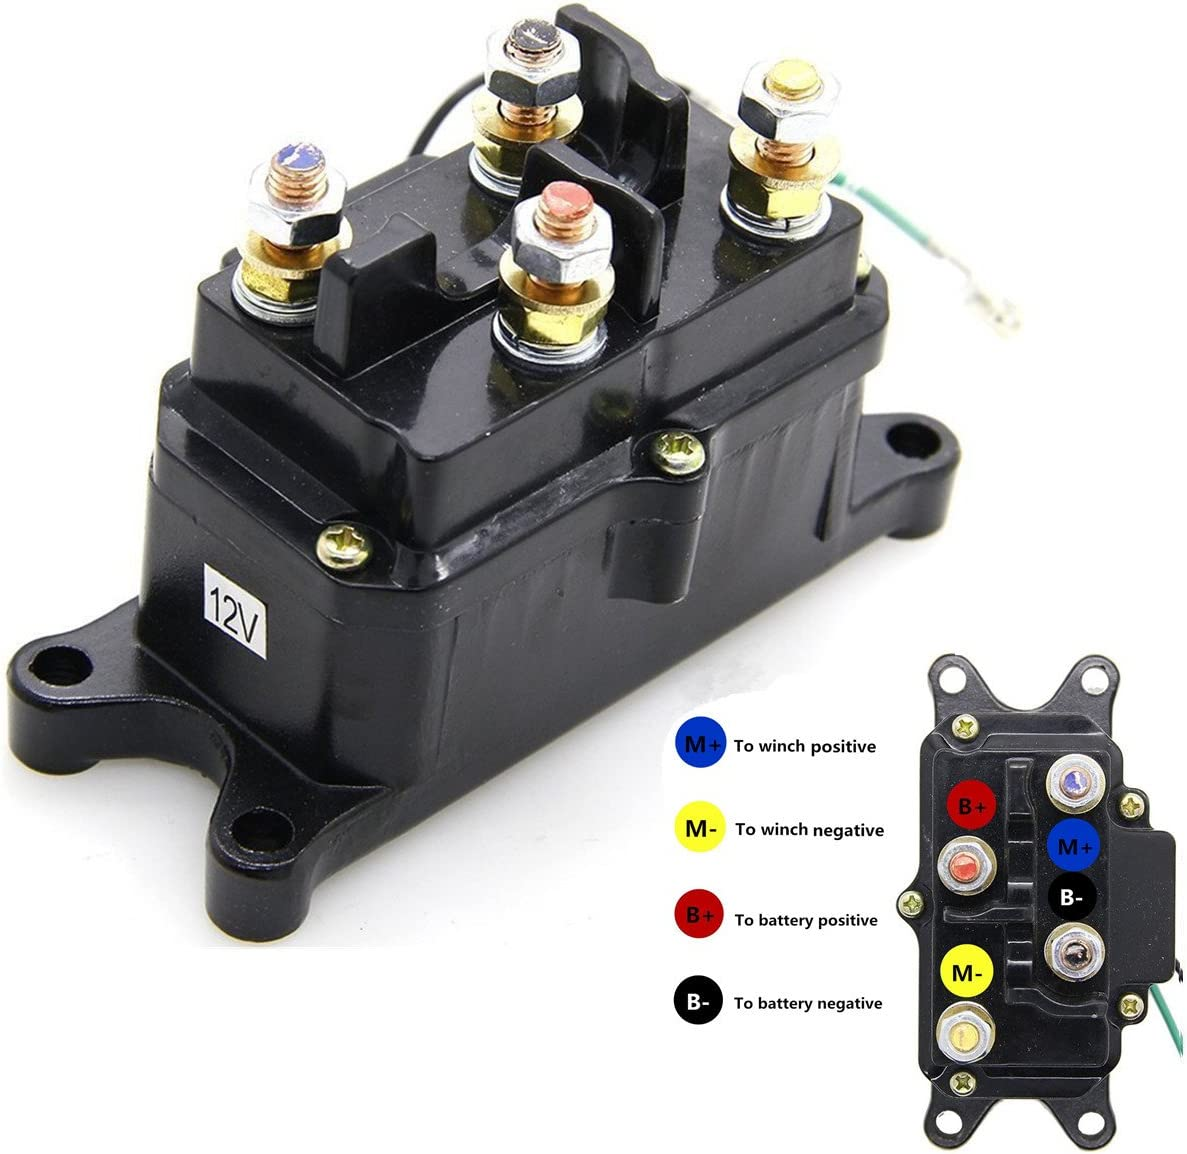 12v 250a Winch Solenoid Relay Contactor Thumb Truck For Atv Utv 4x4 Vehicles Remote Control Systems Amazon Canada